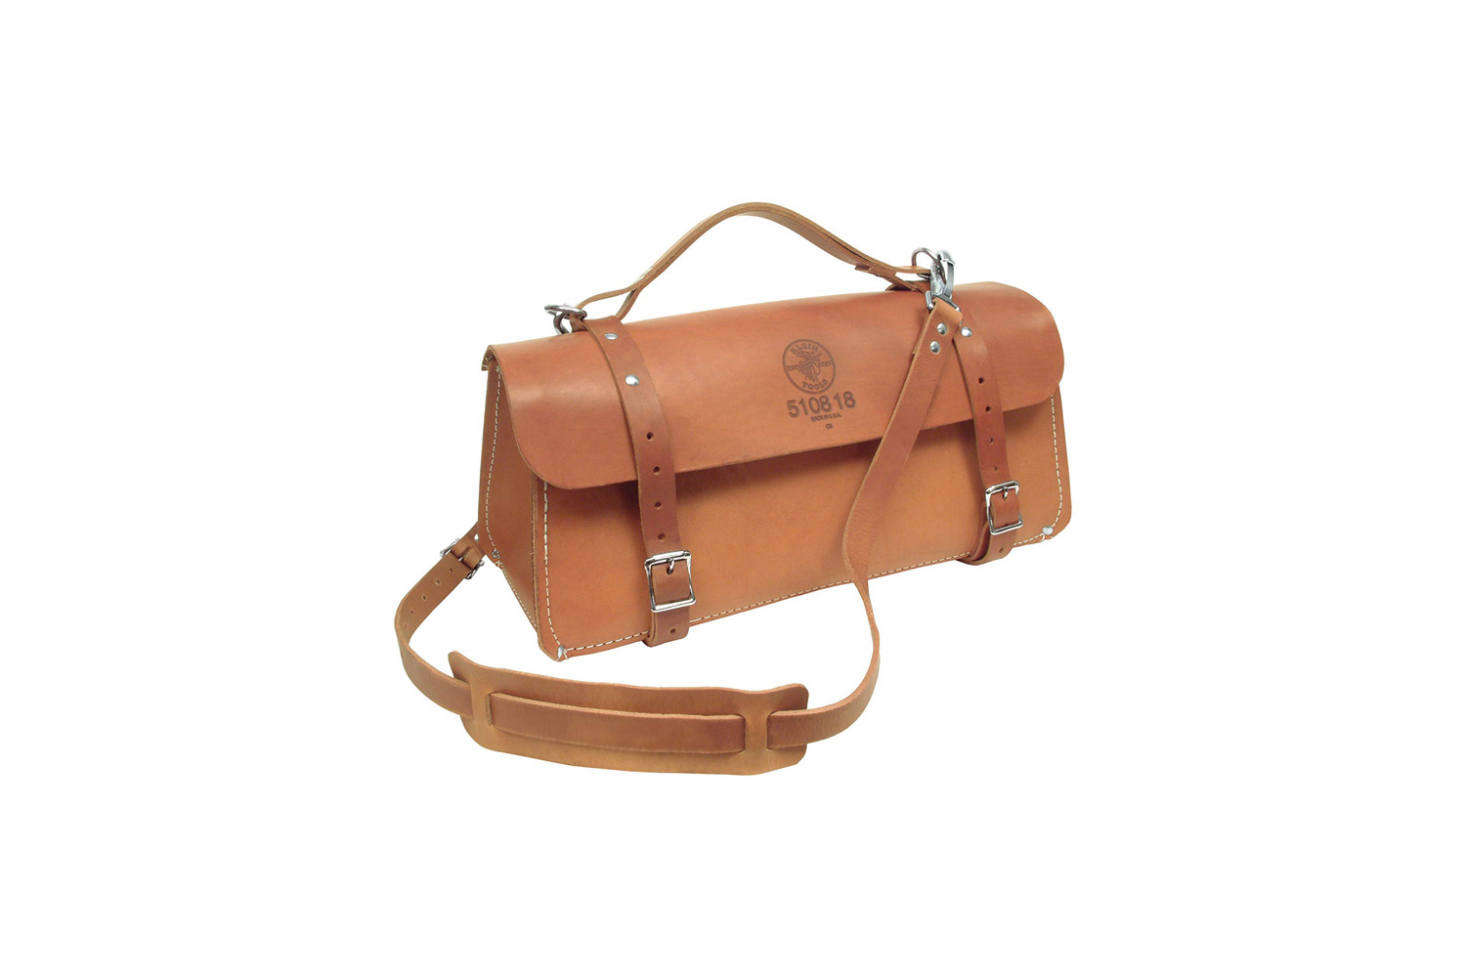 The Klein Tools 18-Inch Deluxe Leather Bag is the bag to contain all your gardening gear from the time-honored workwear brand Klein. It's $239.70 on Amazon Prime.